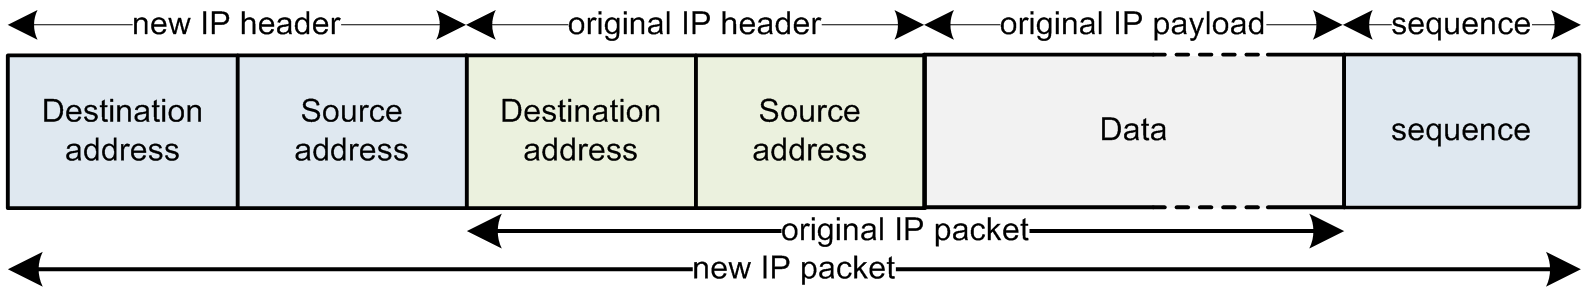 the source-ip and destination-ip addresses are altered to enable routing between the two transparent proxies.